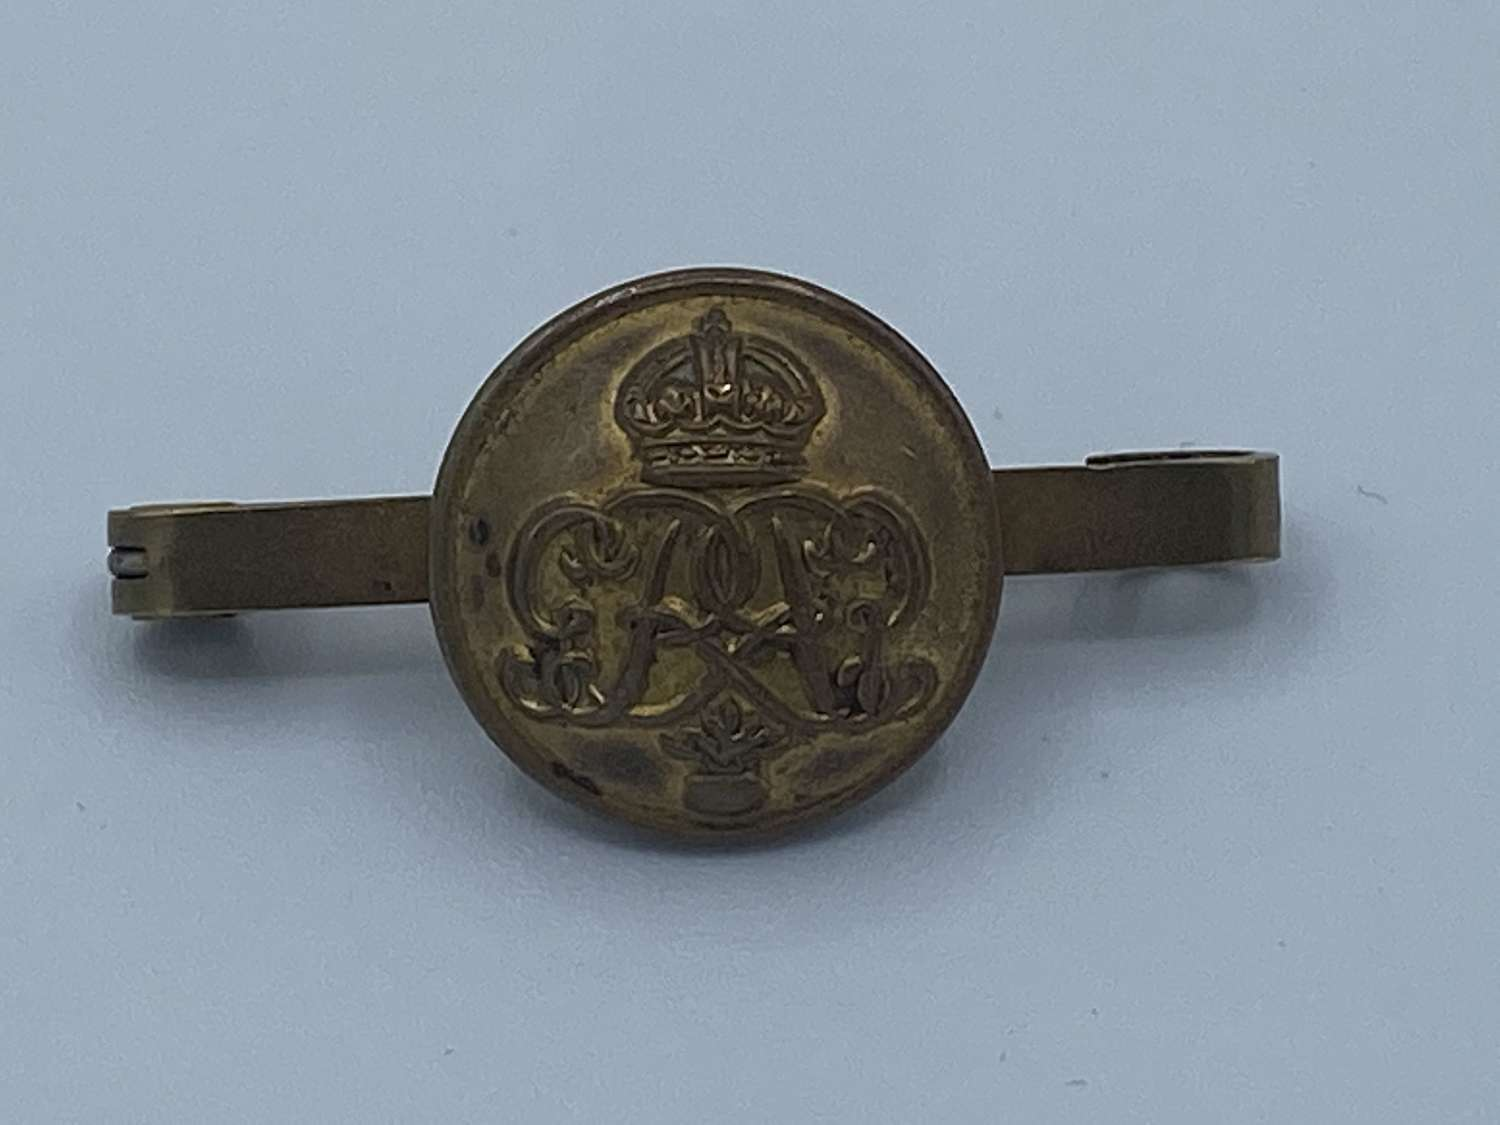 WW1 British Army Grenadier Guards Button Badge Sweetheart